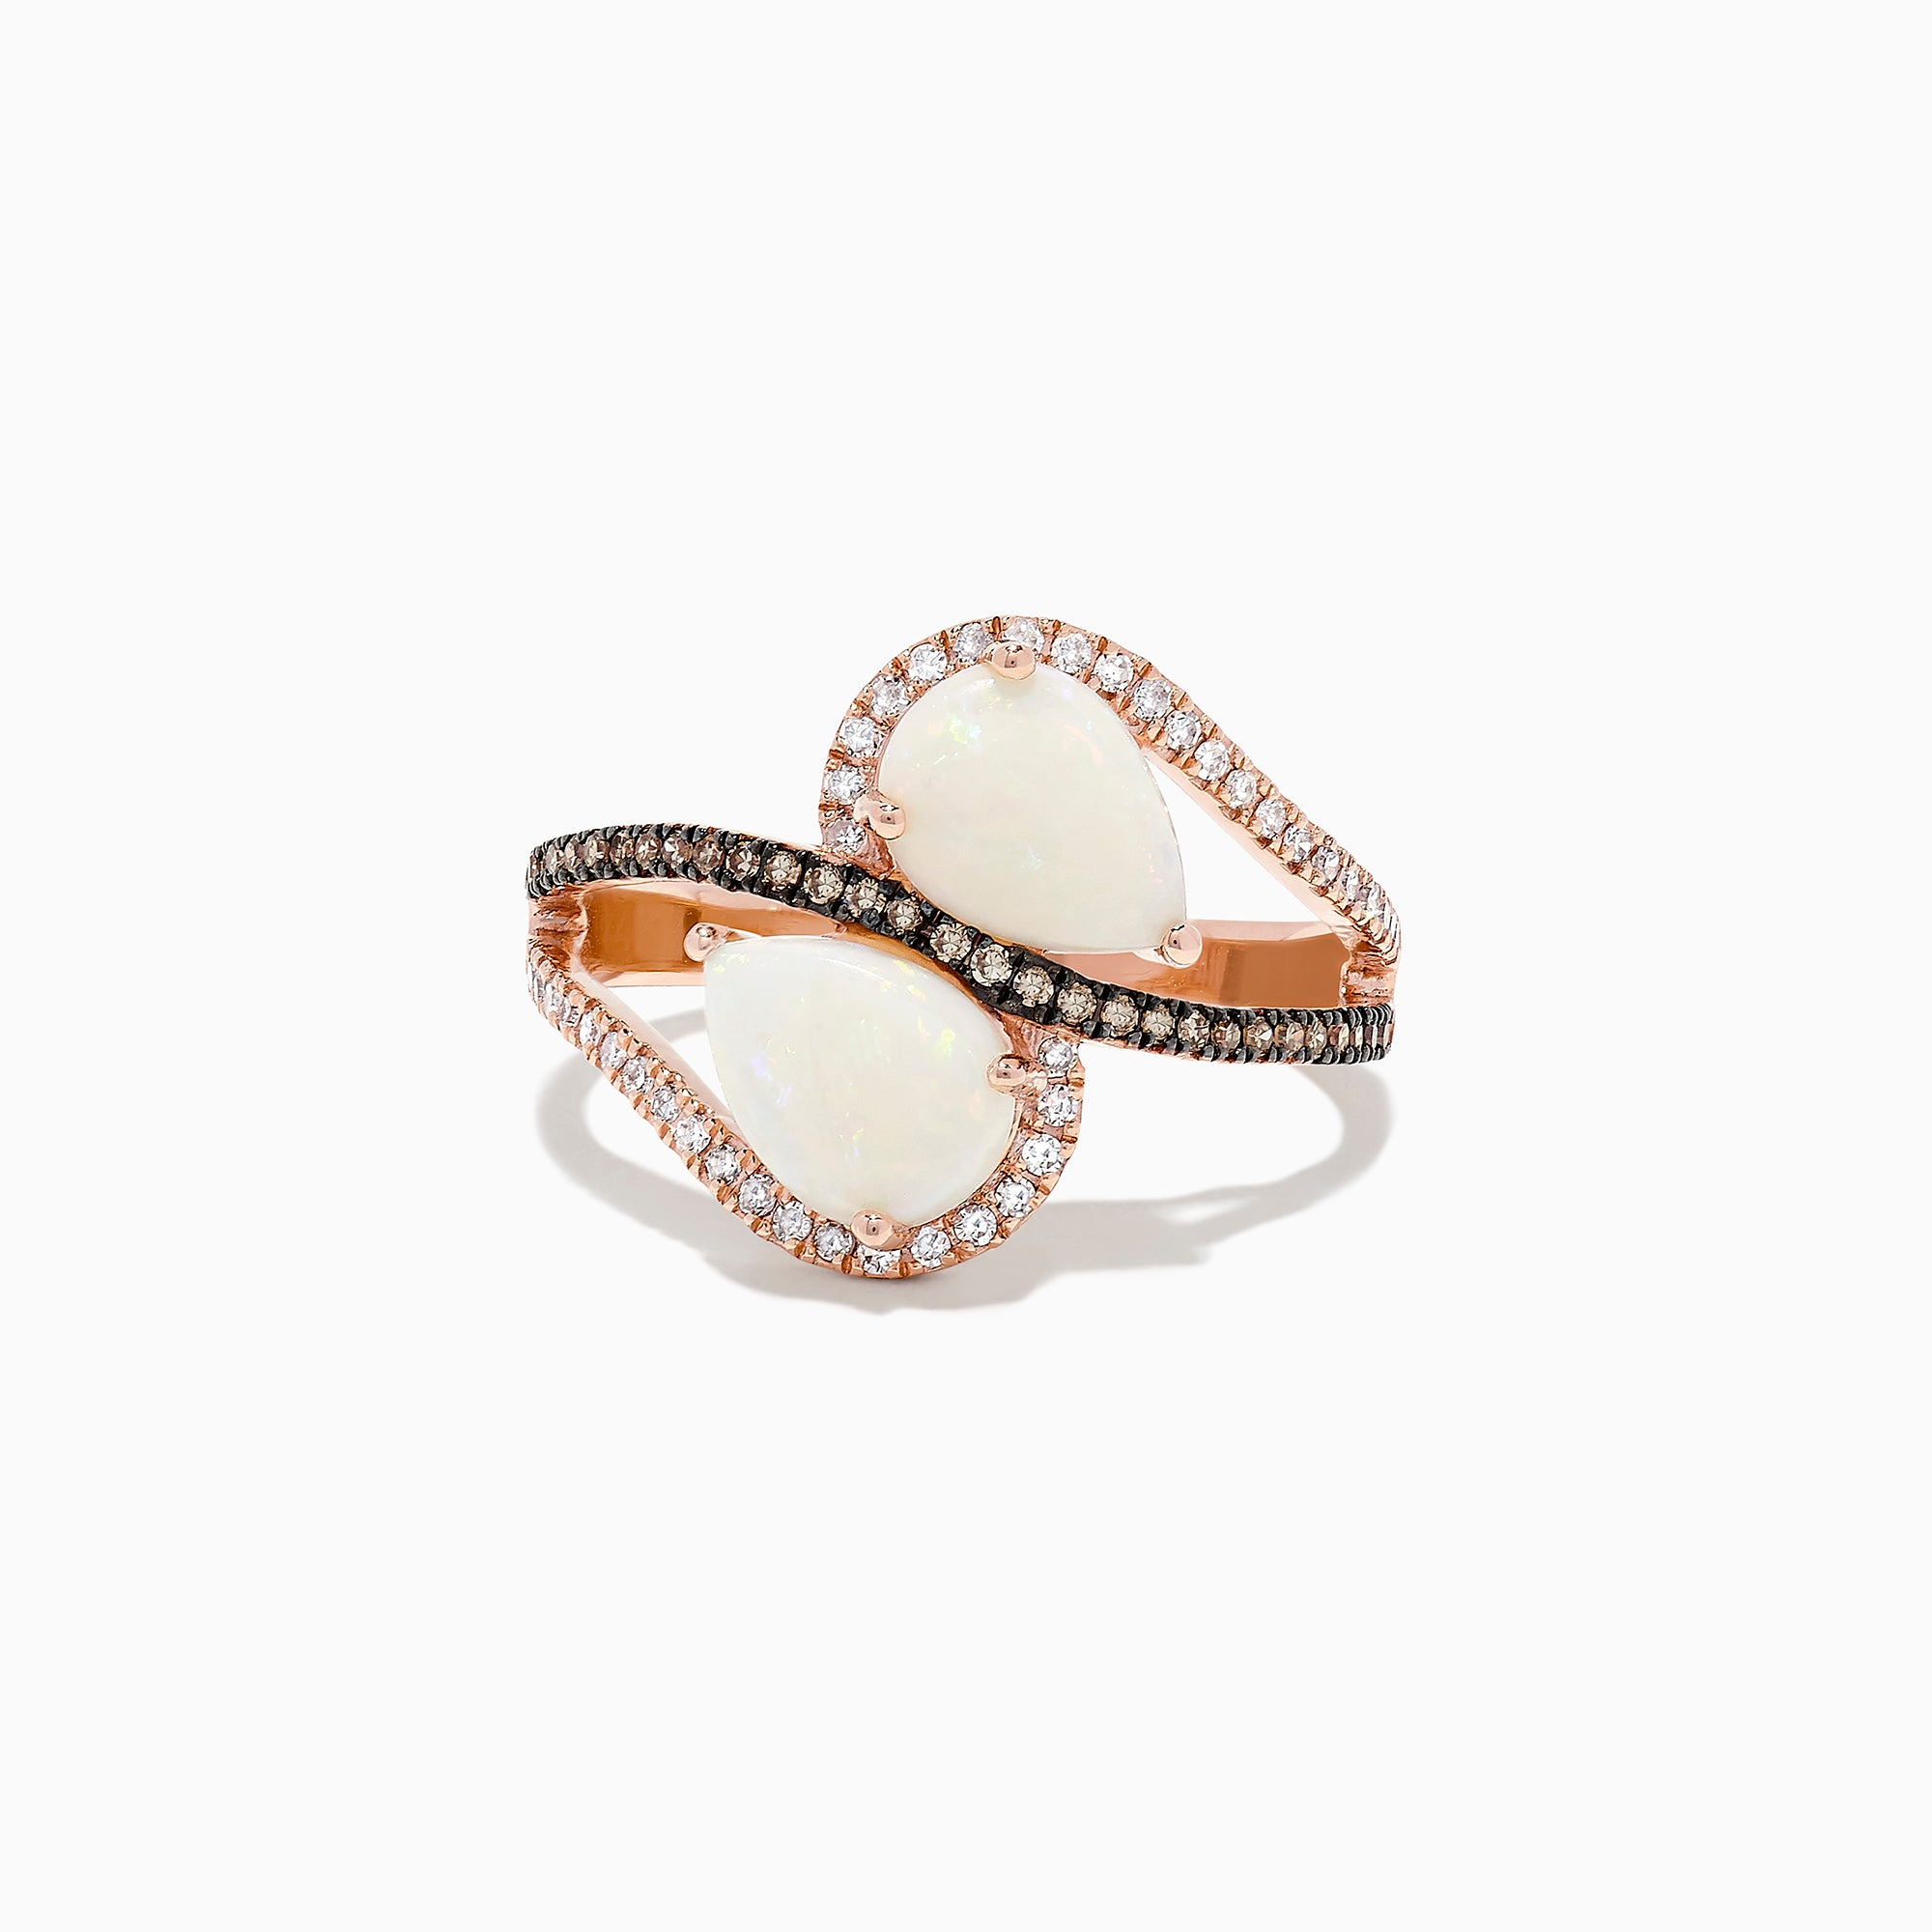 Effy 14K Rose Gold Opal and Diamond Ring, 1.71 TCW